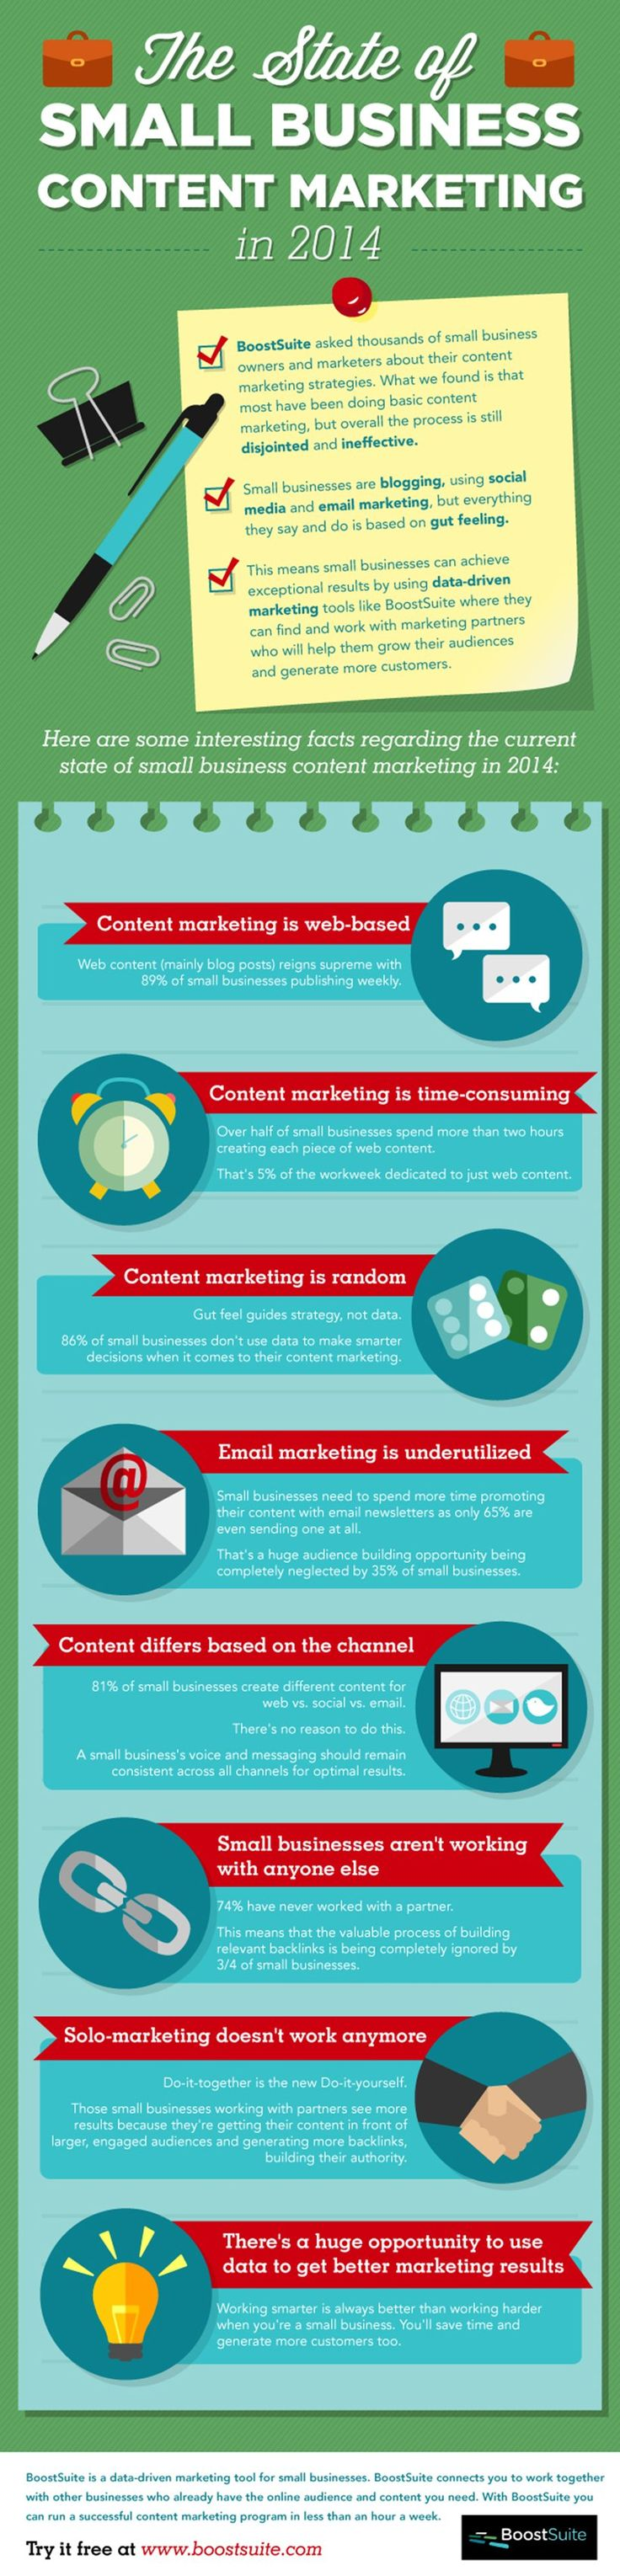 The State Of Small Business Content Marketing (Infographic) image 857J0I5E 820x34091